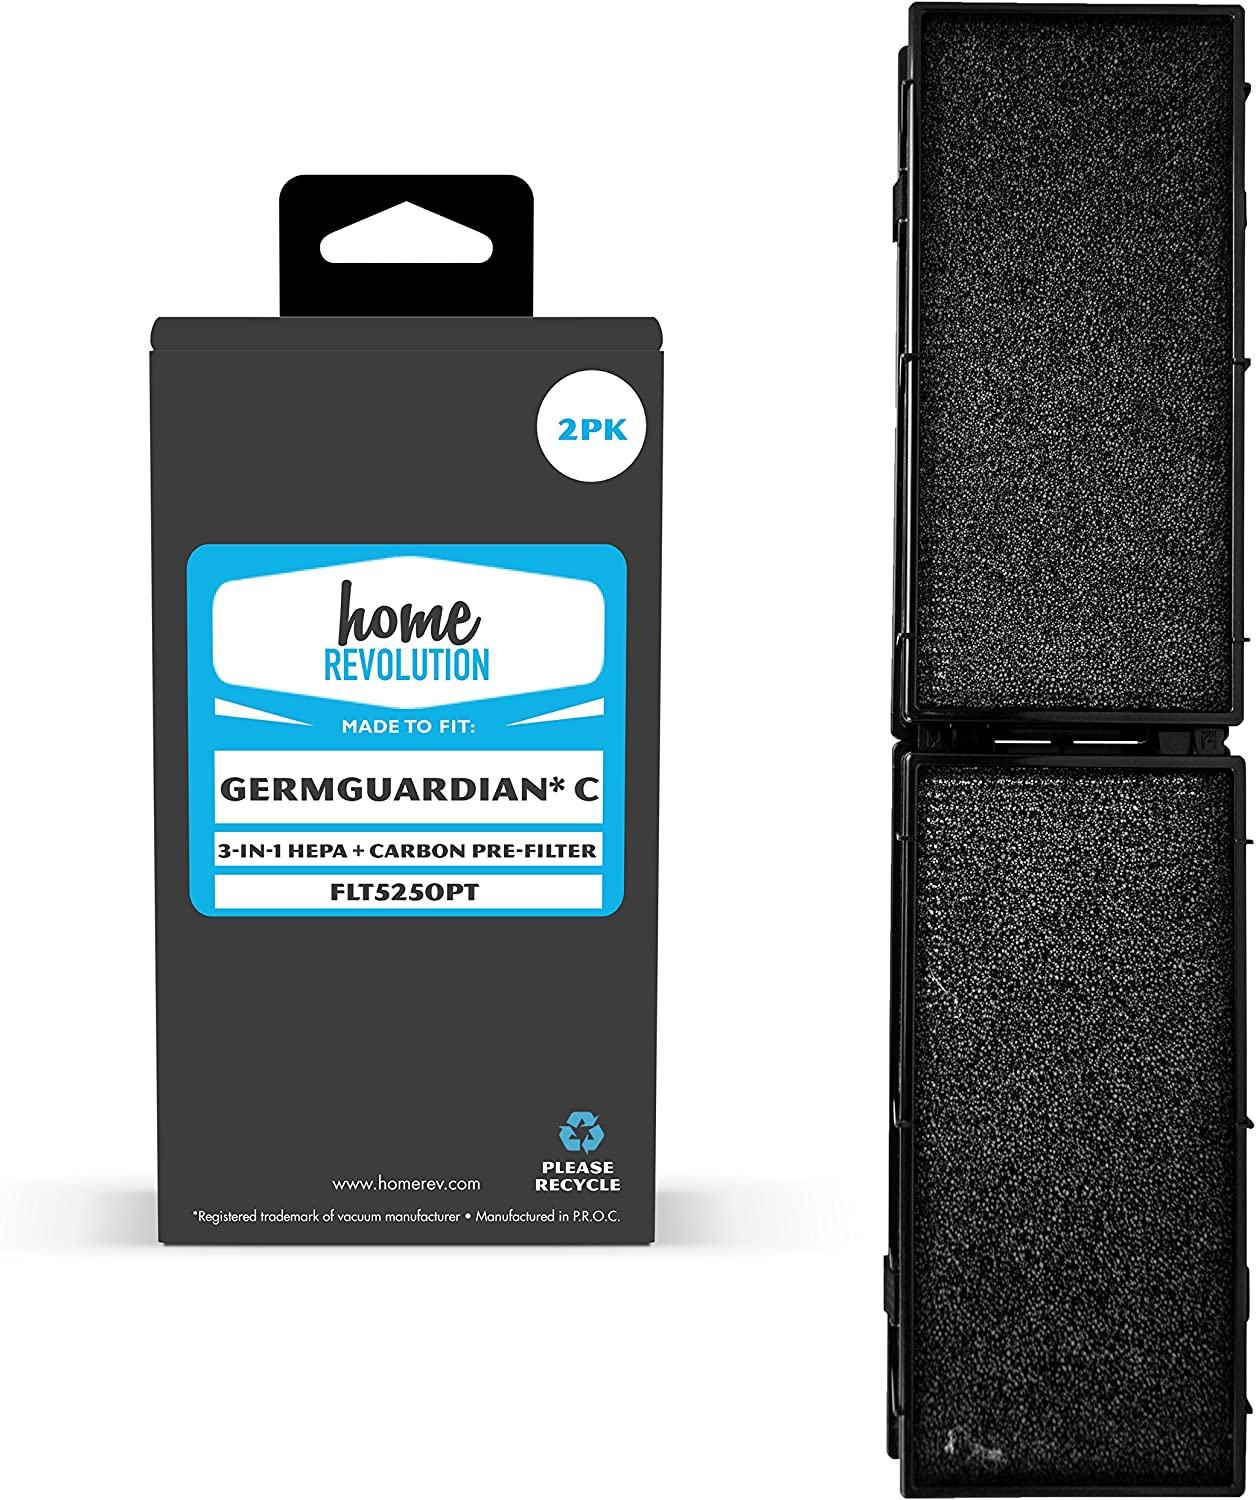 Home Revolution 2 Replacement Carbon and HEPA Filters, Fits GermGuardian C 5000 Series Air Purifier and Part FLT5250PT